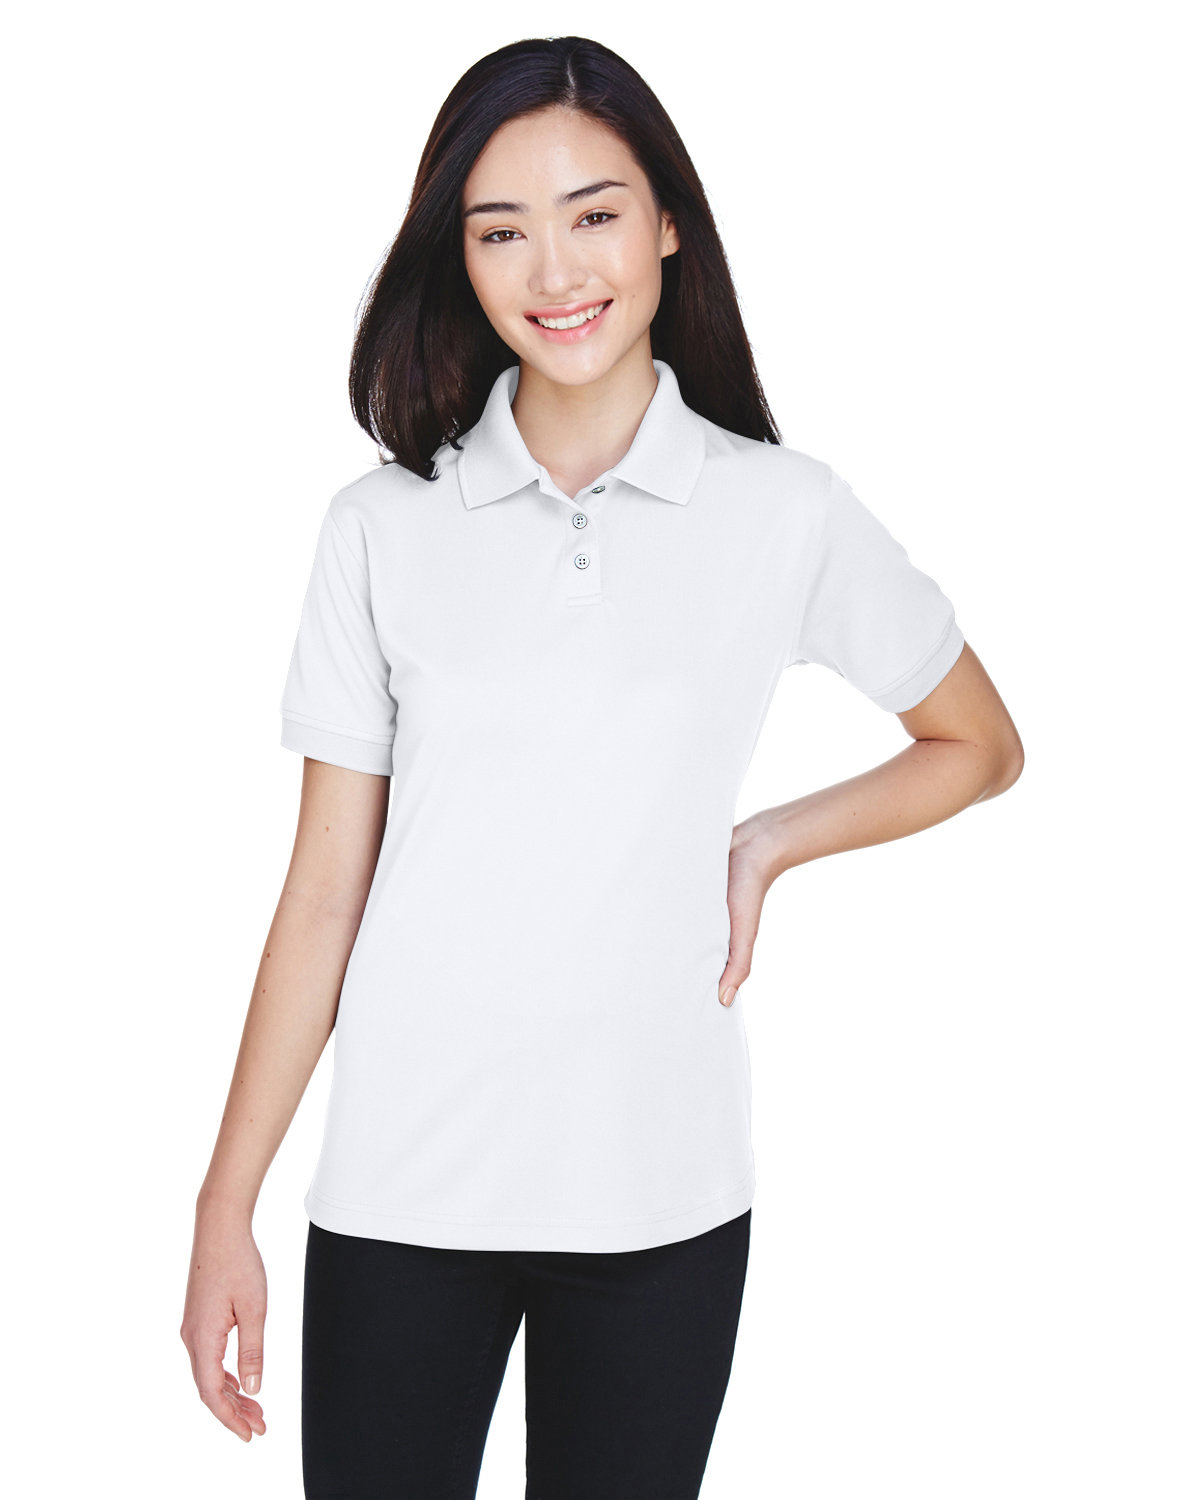 UltraClub Ladies' Platinum Performance Piqué Polo with TempControl Technology WHITE